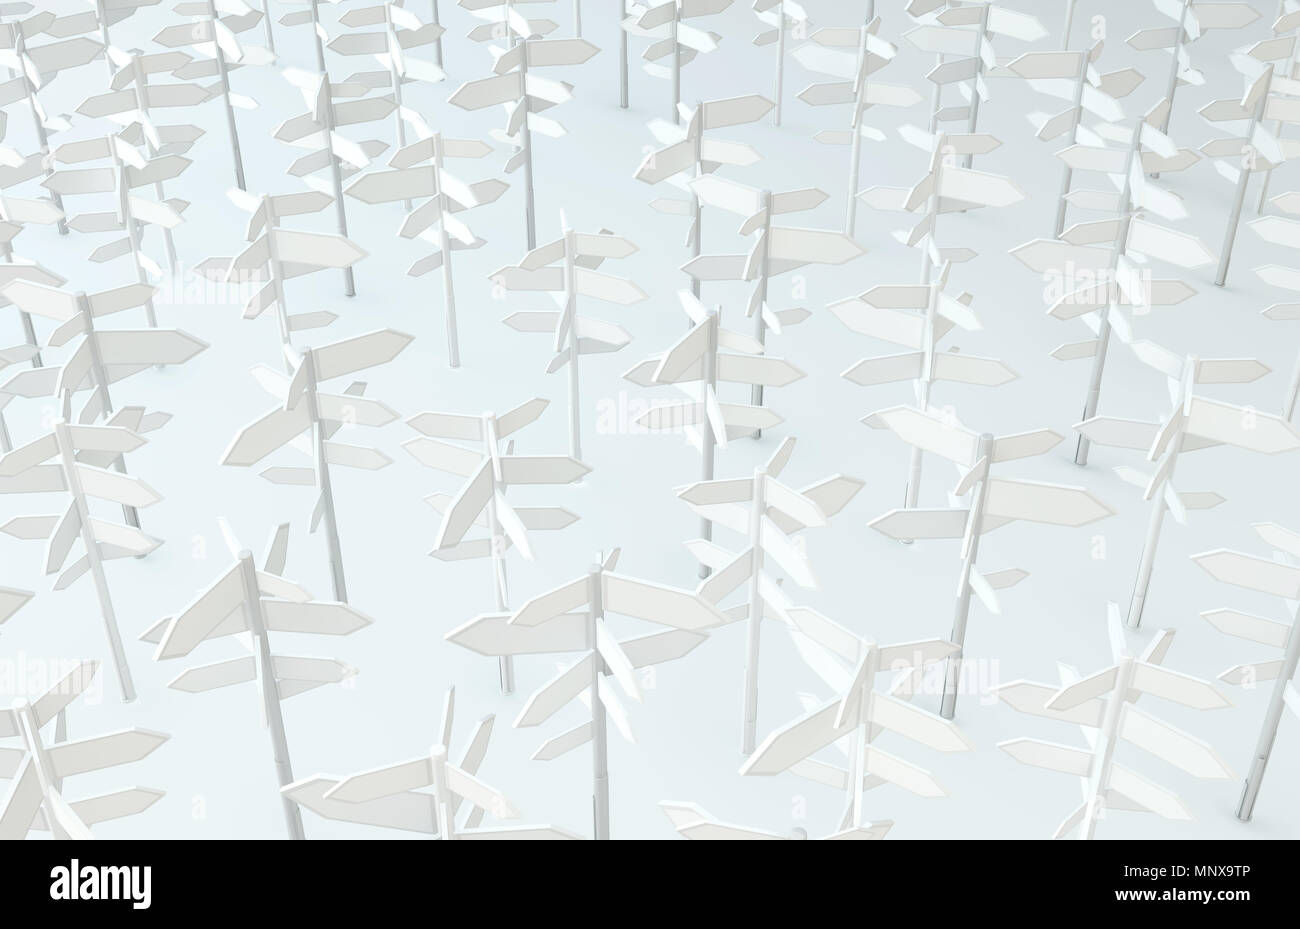 Direction signposts group white background, 3d illustration, horizontal - Stock Image